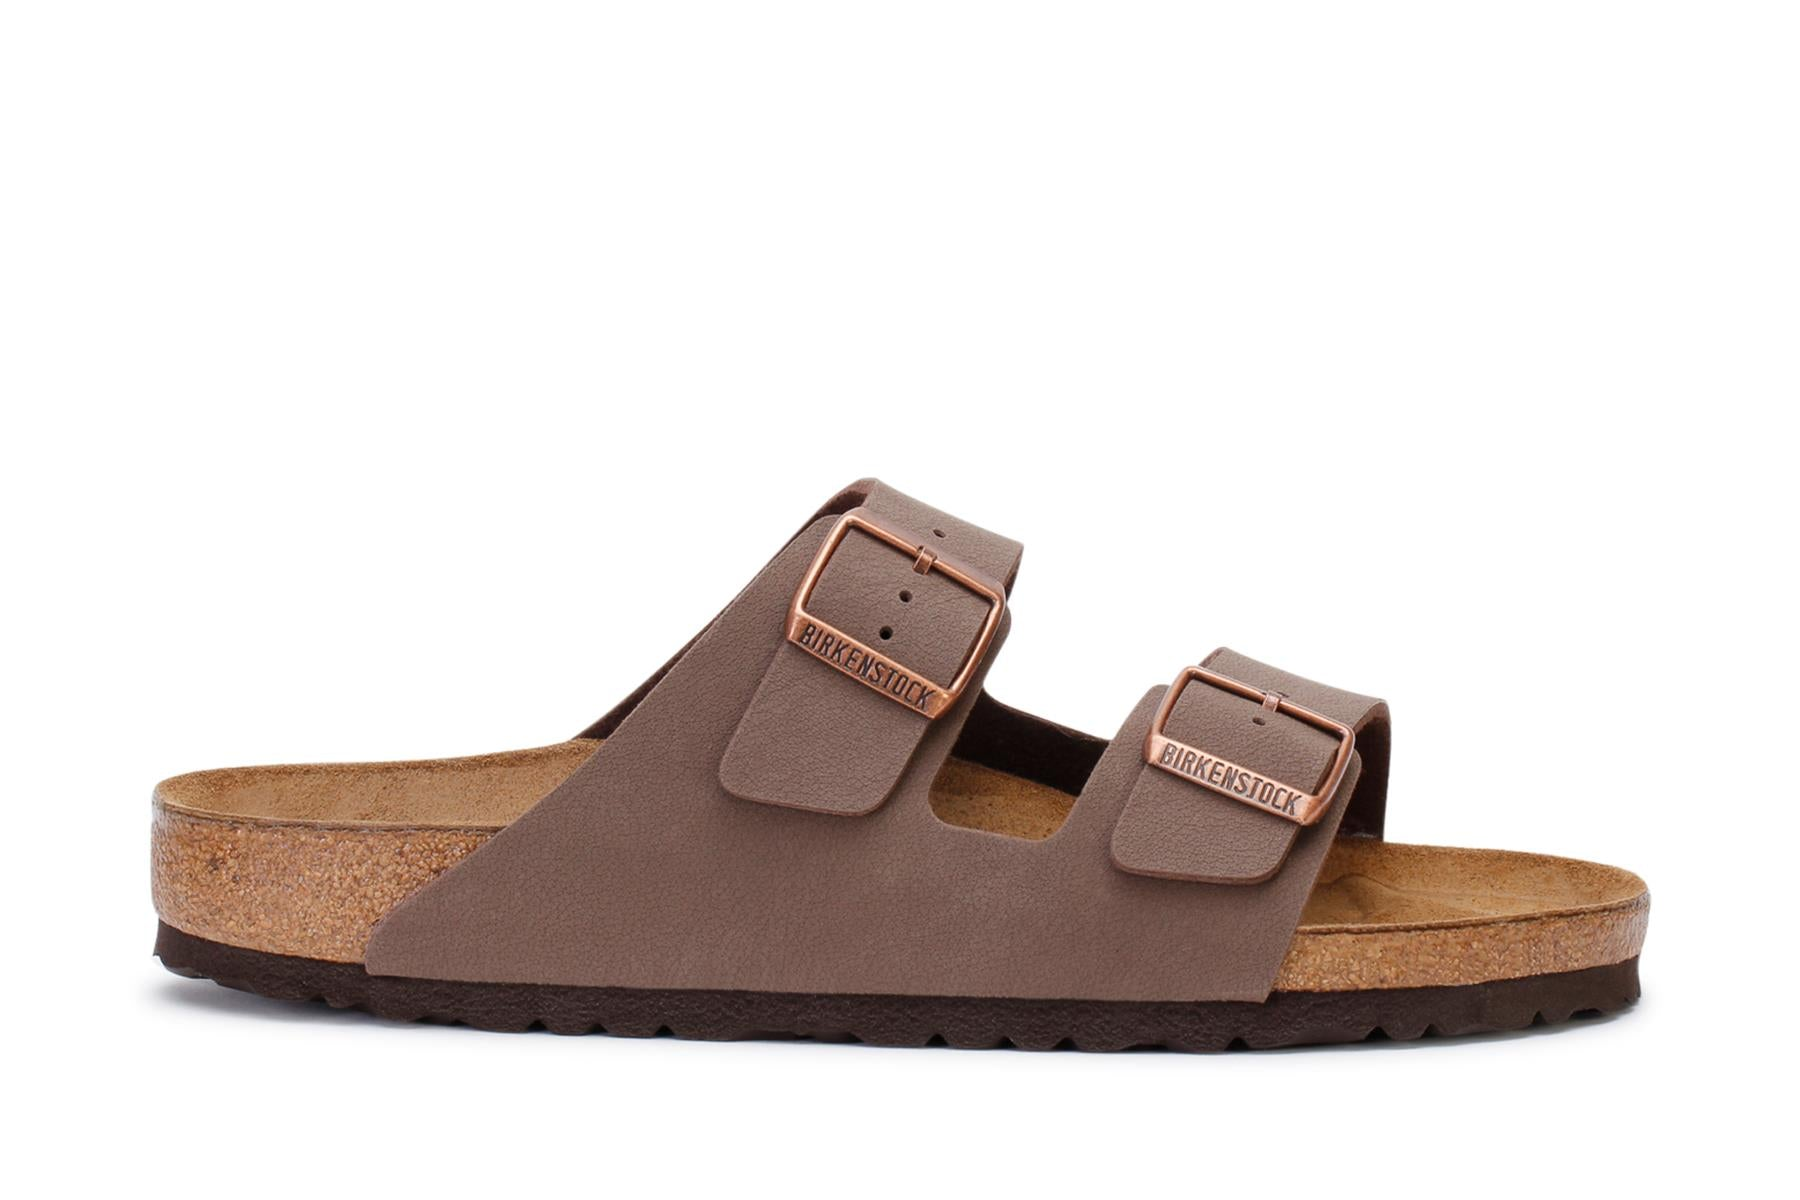 Birkenstock Men's Slide Sandals Arizona BS Mocca Birko-flor Nubuck 0151181